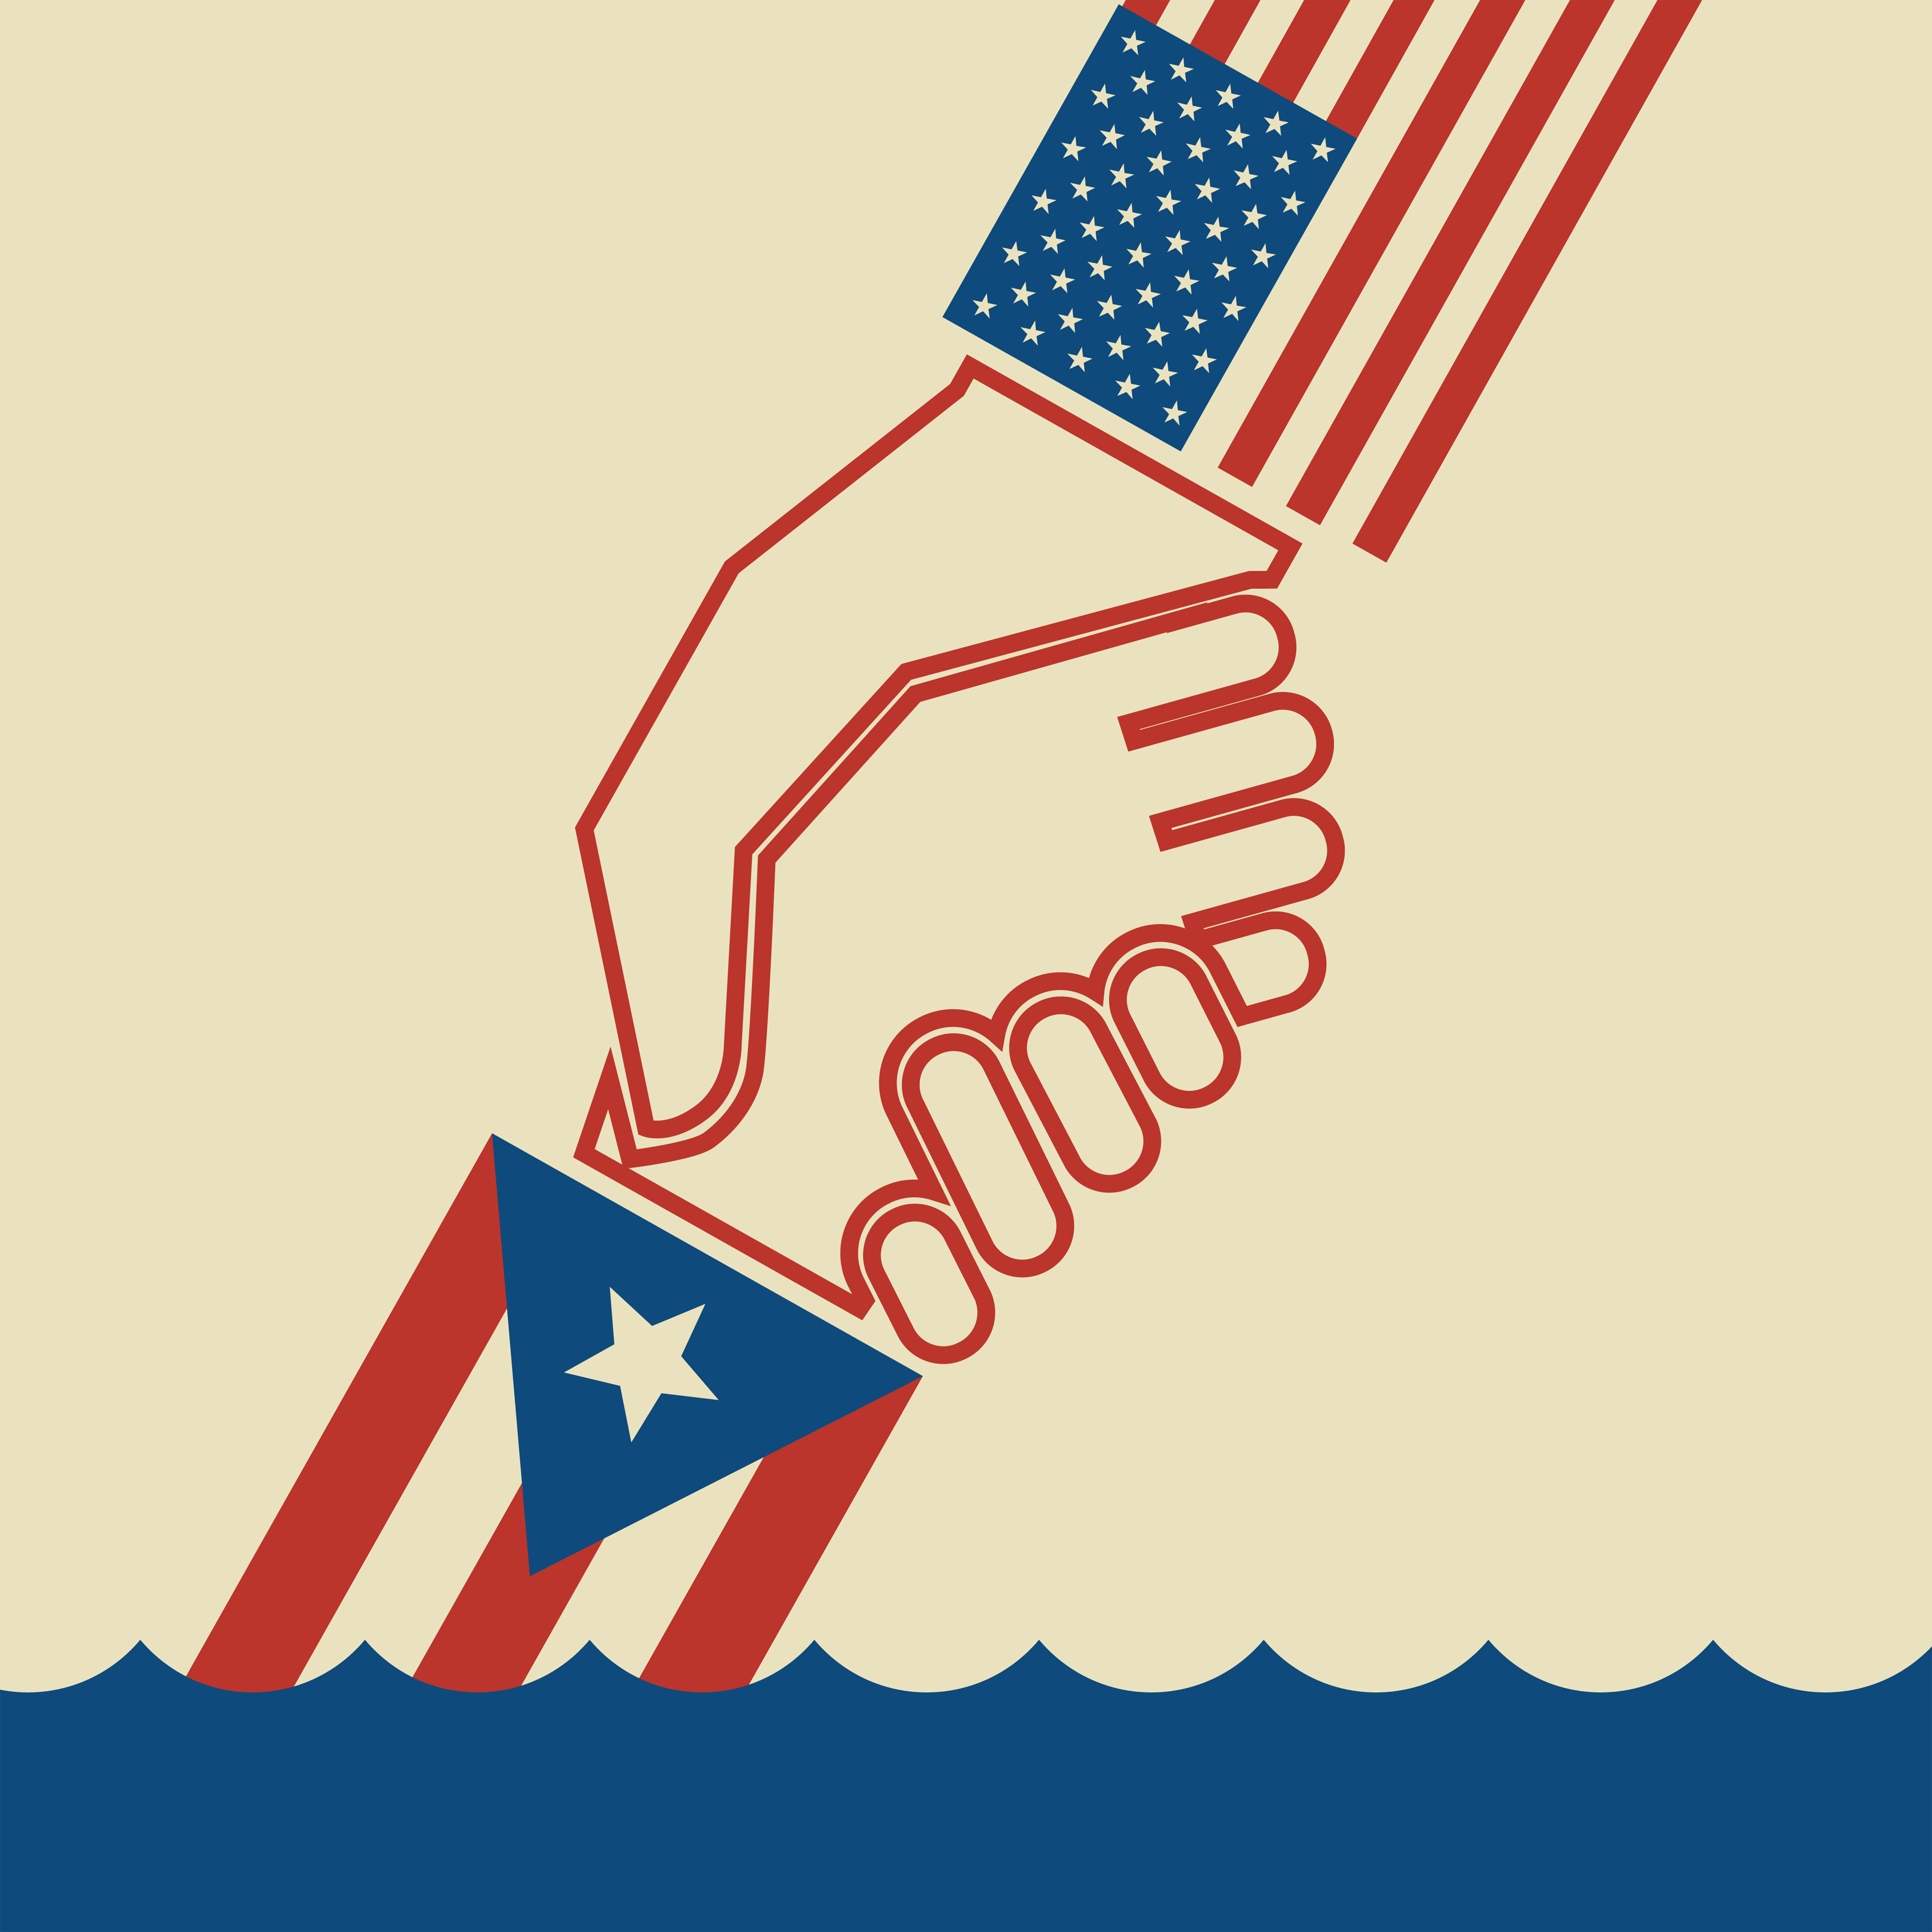 Puerto Rico and the United States: How Did We Get Here and Where Are We Going?